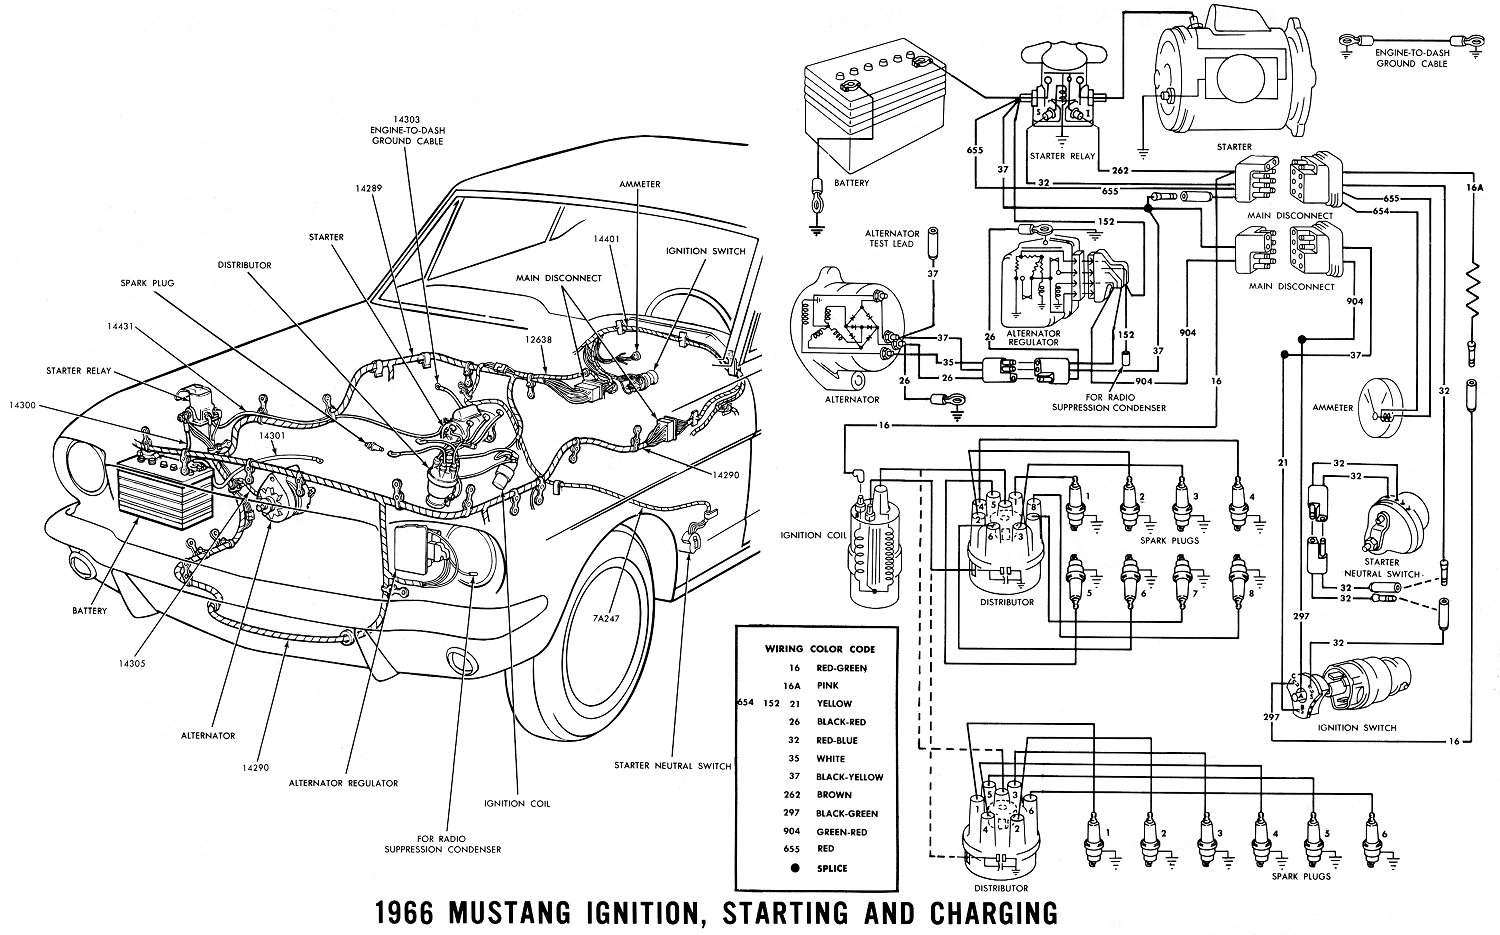 66ignit 1966 mustang wiring diagrams average joe restoration engine wiring diagram at crackthecode.co